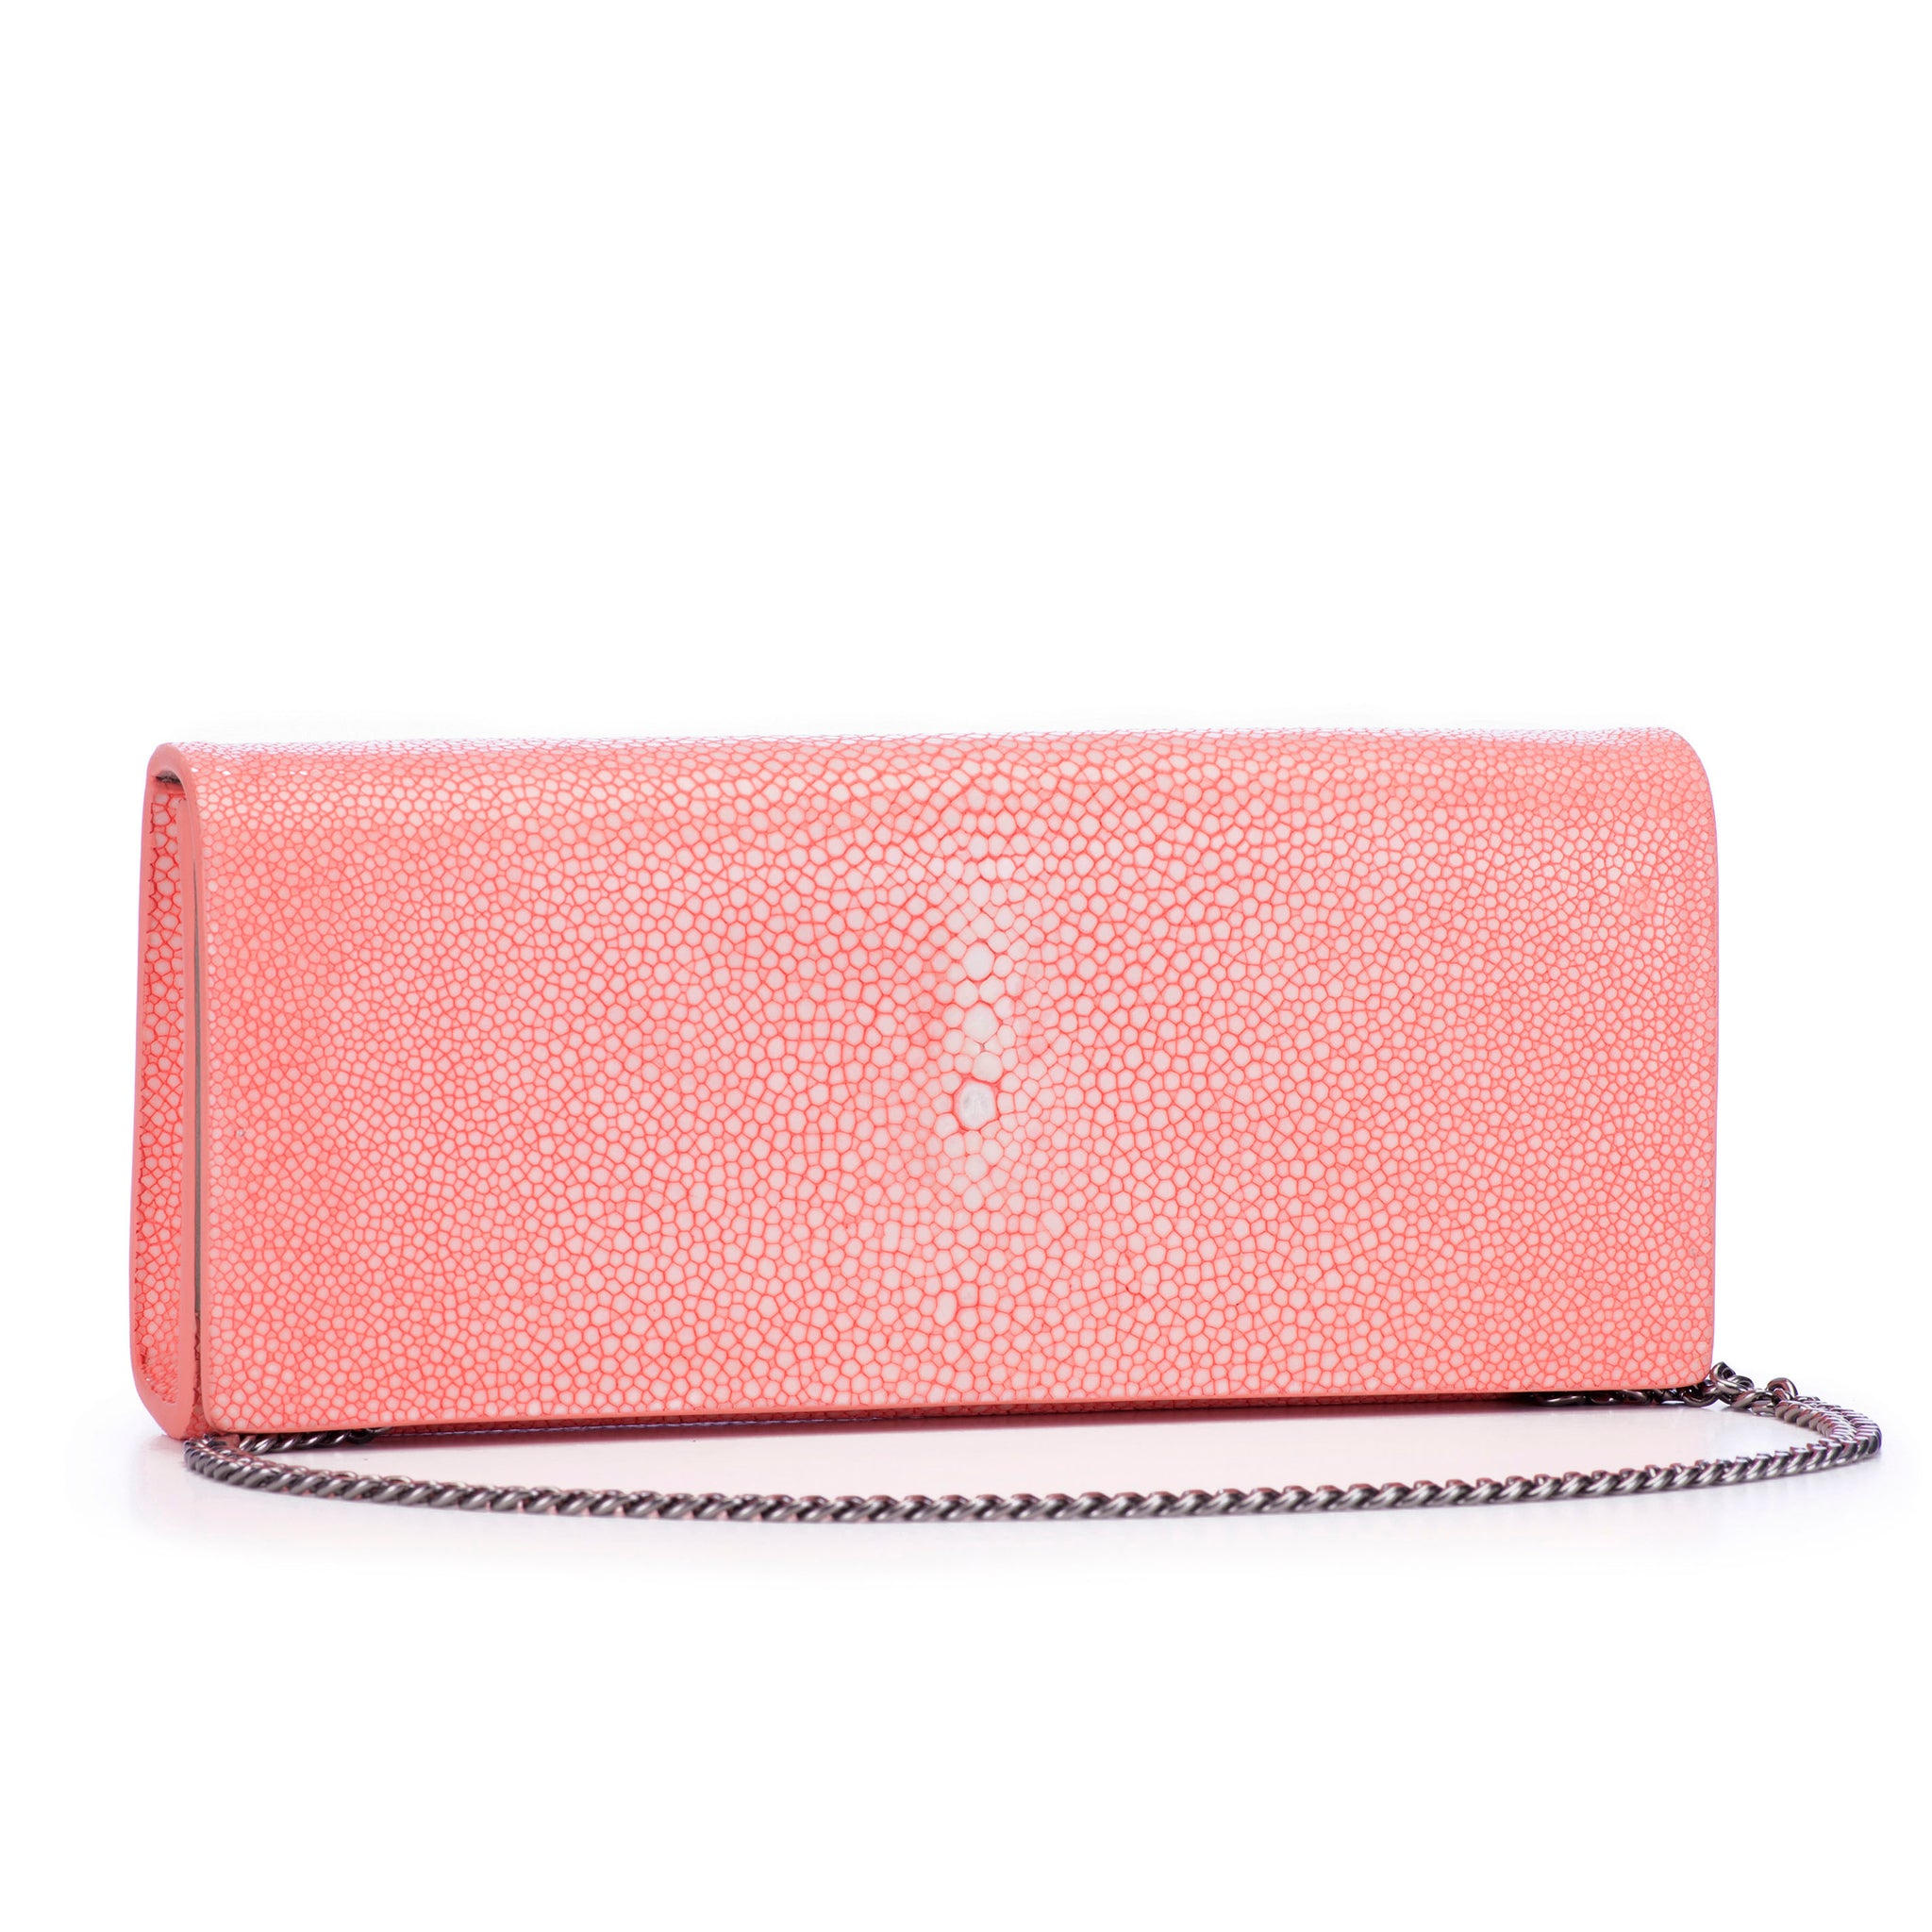 Coral Shagreen Clutch Bag Front View With Chain Cleo - Vivo Direct